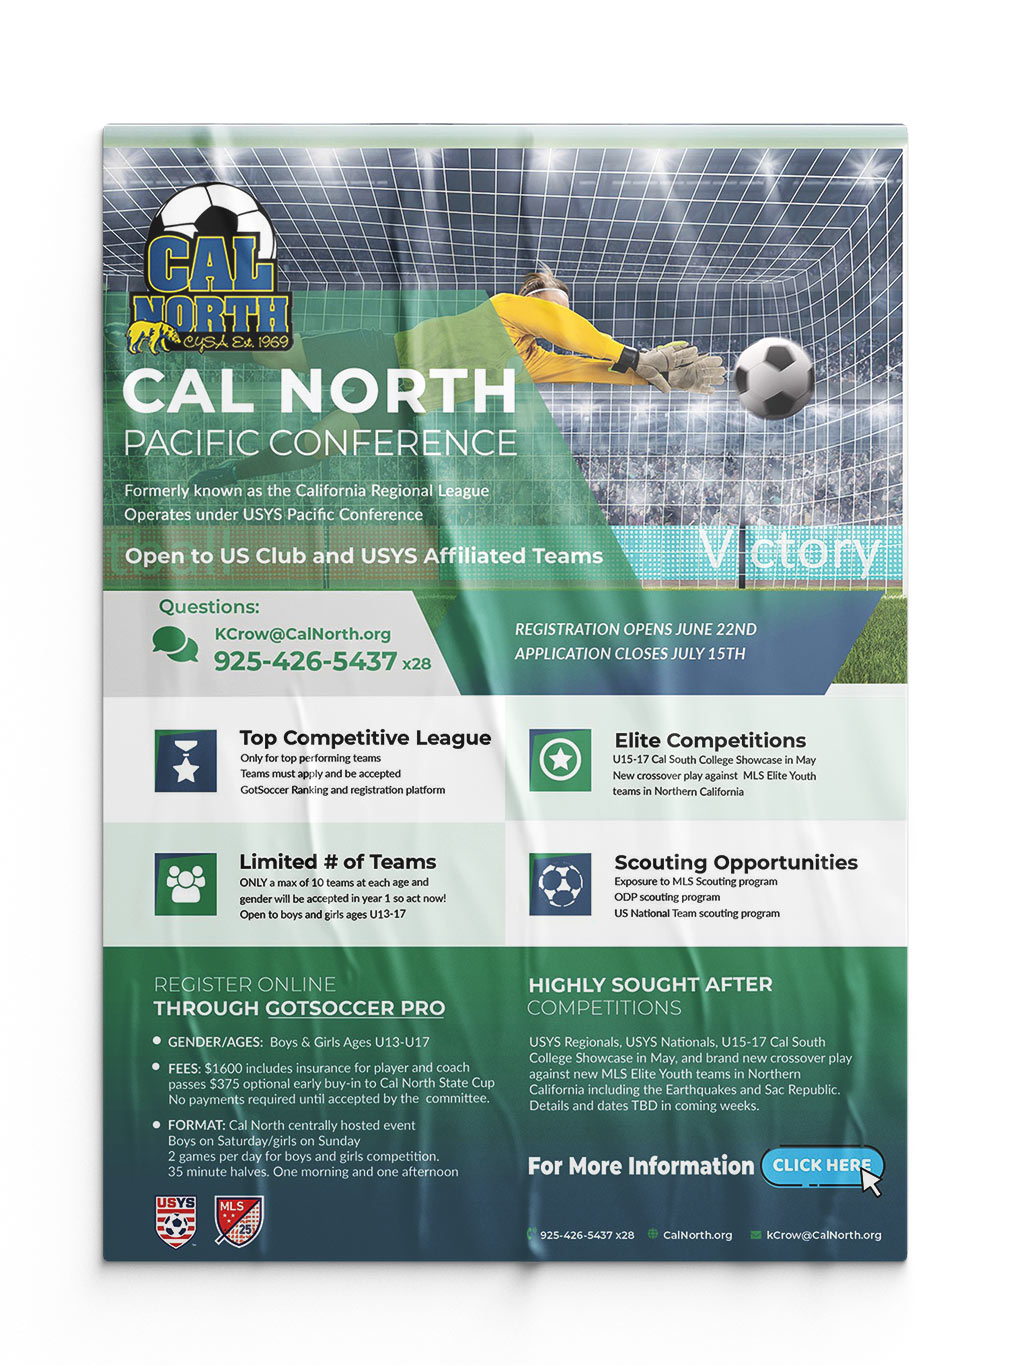 Marketing Poster – Cal North